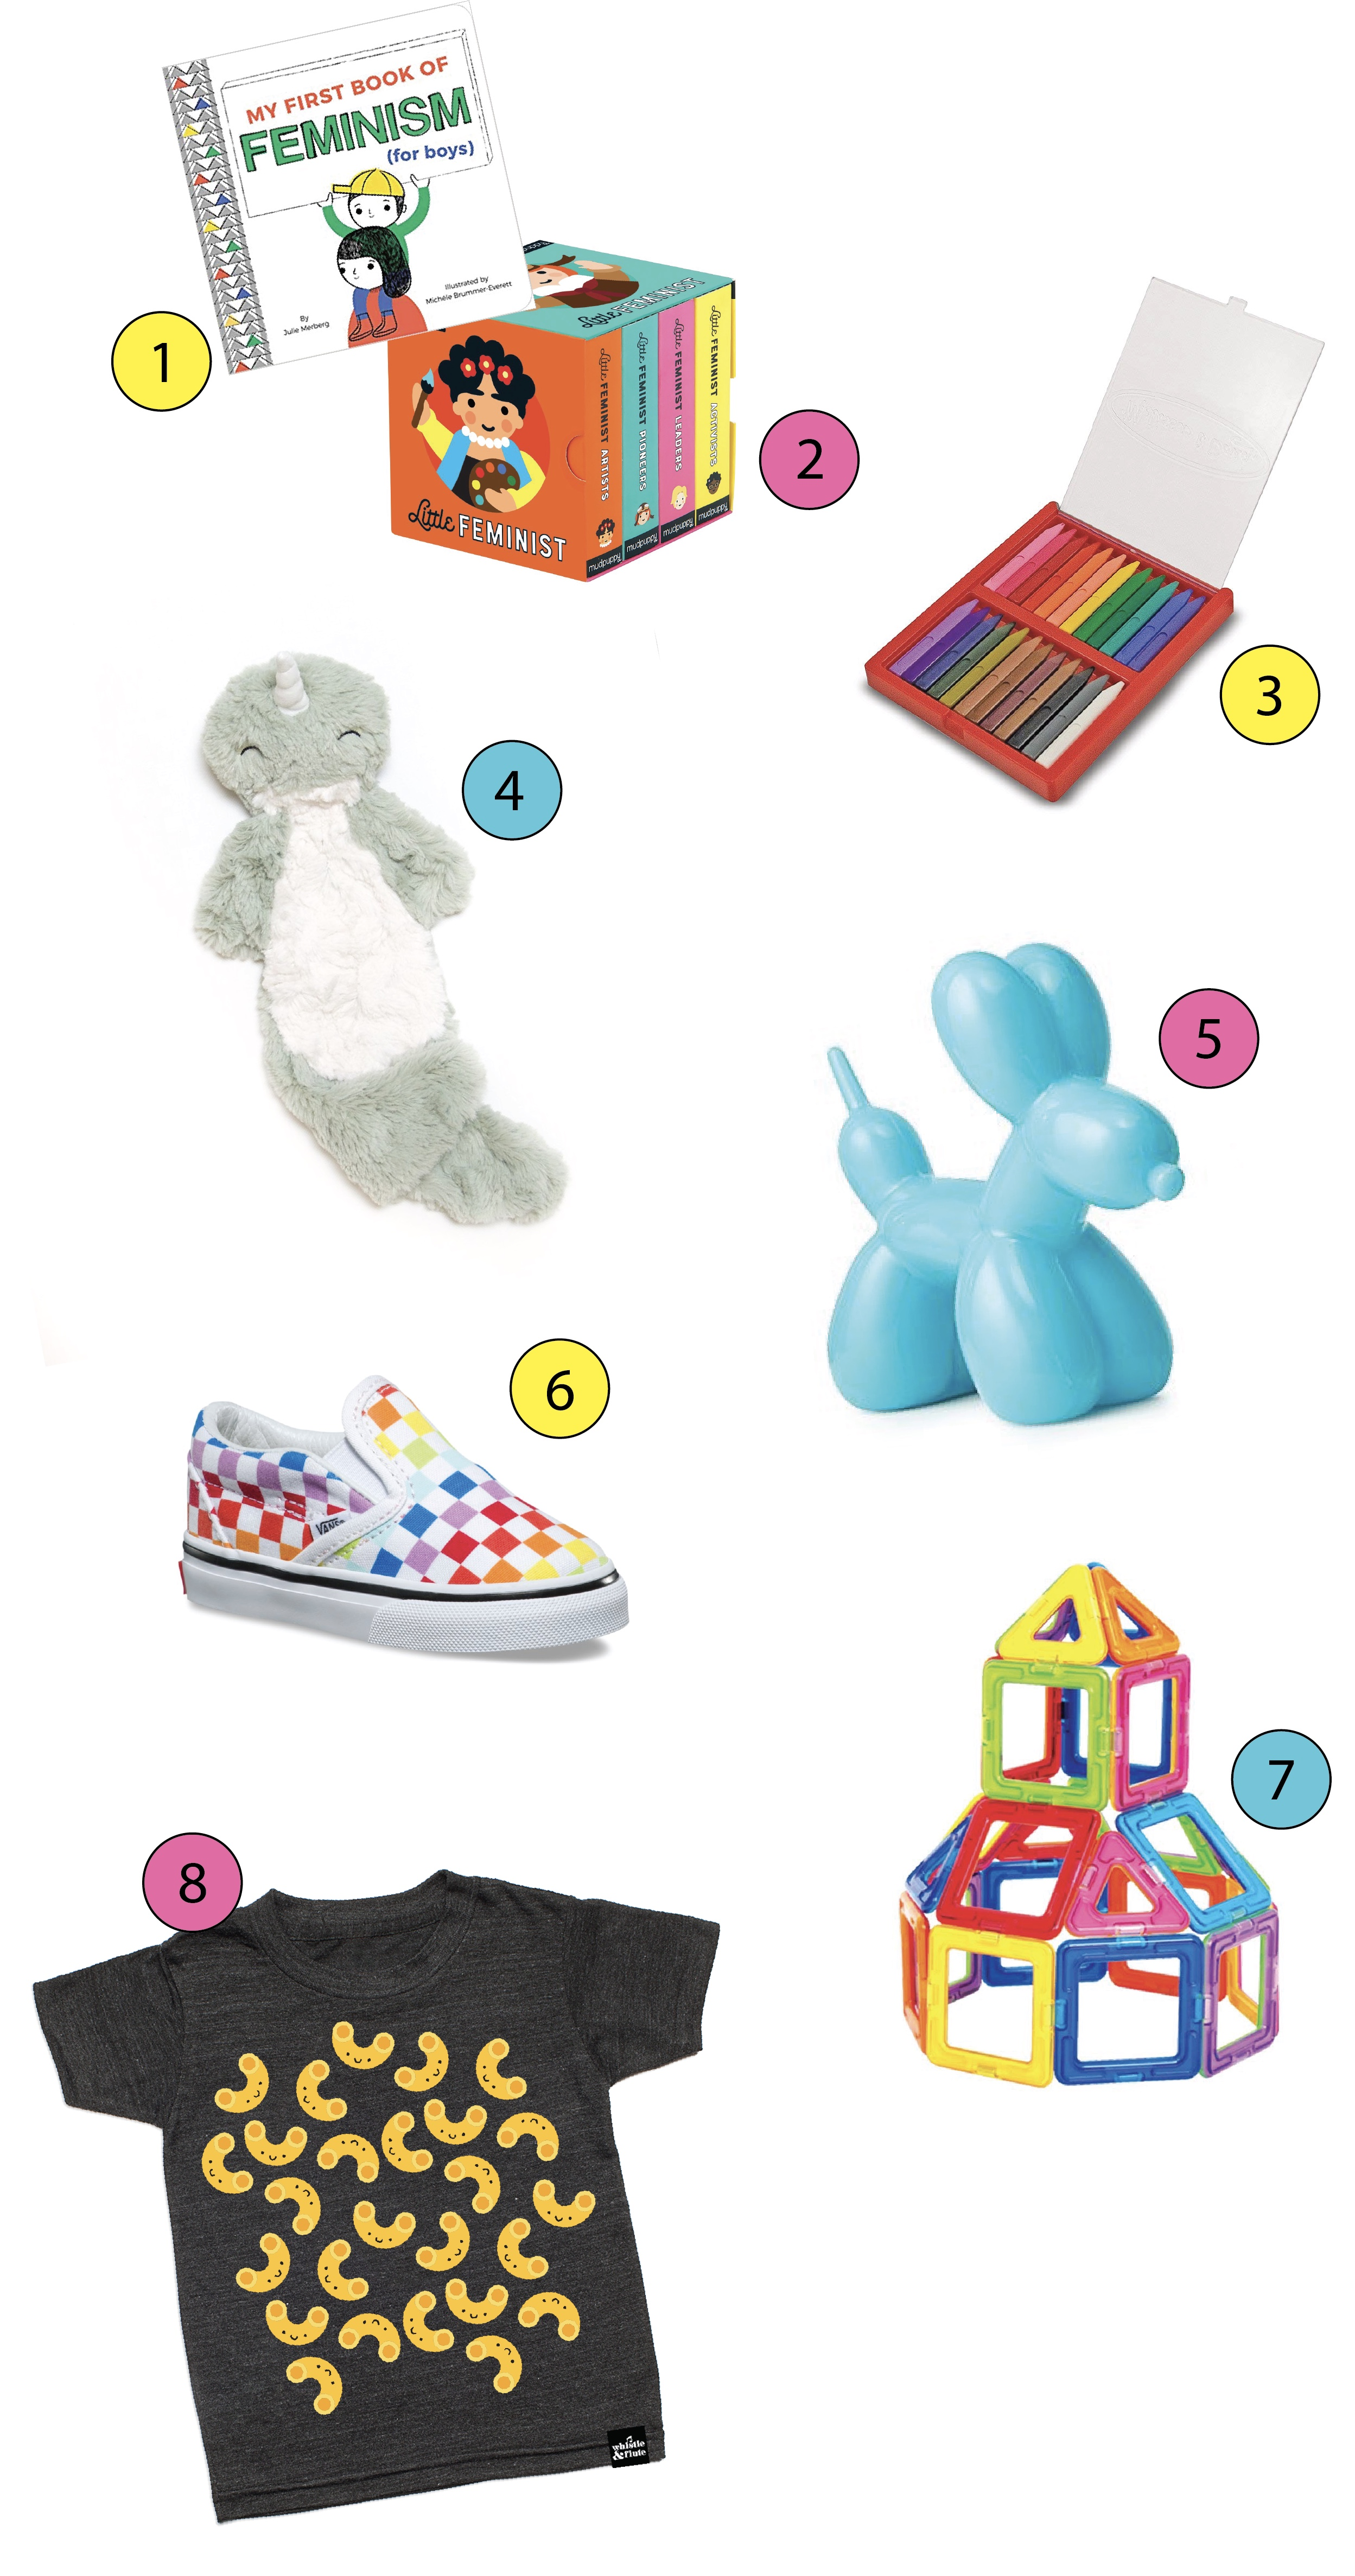 Toddler Gift Guide.jpg